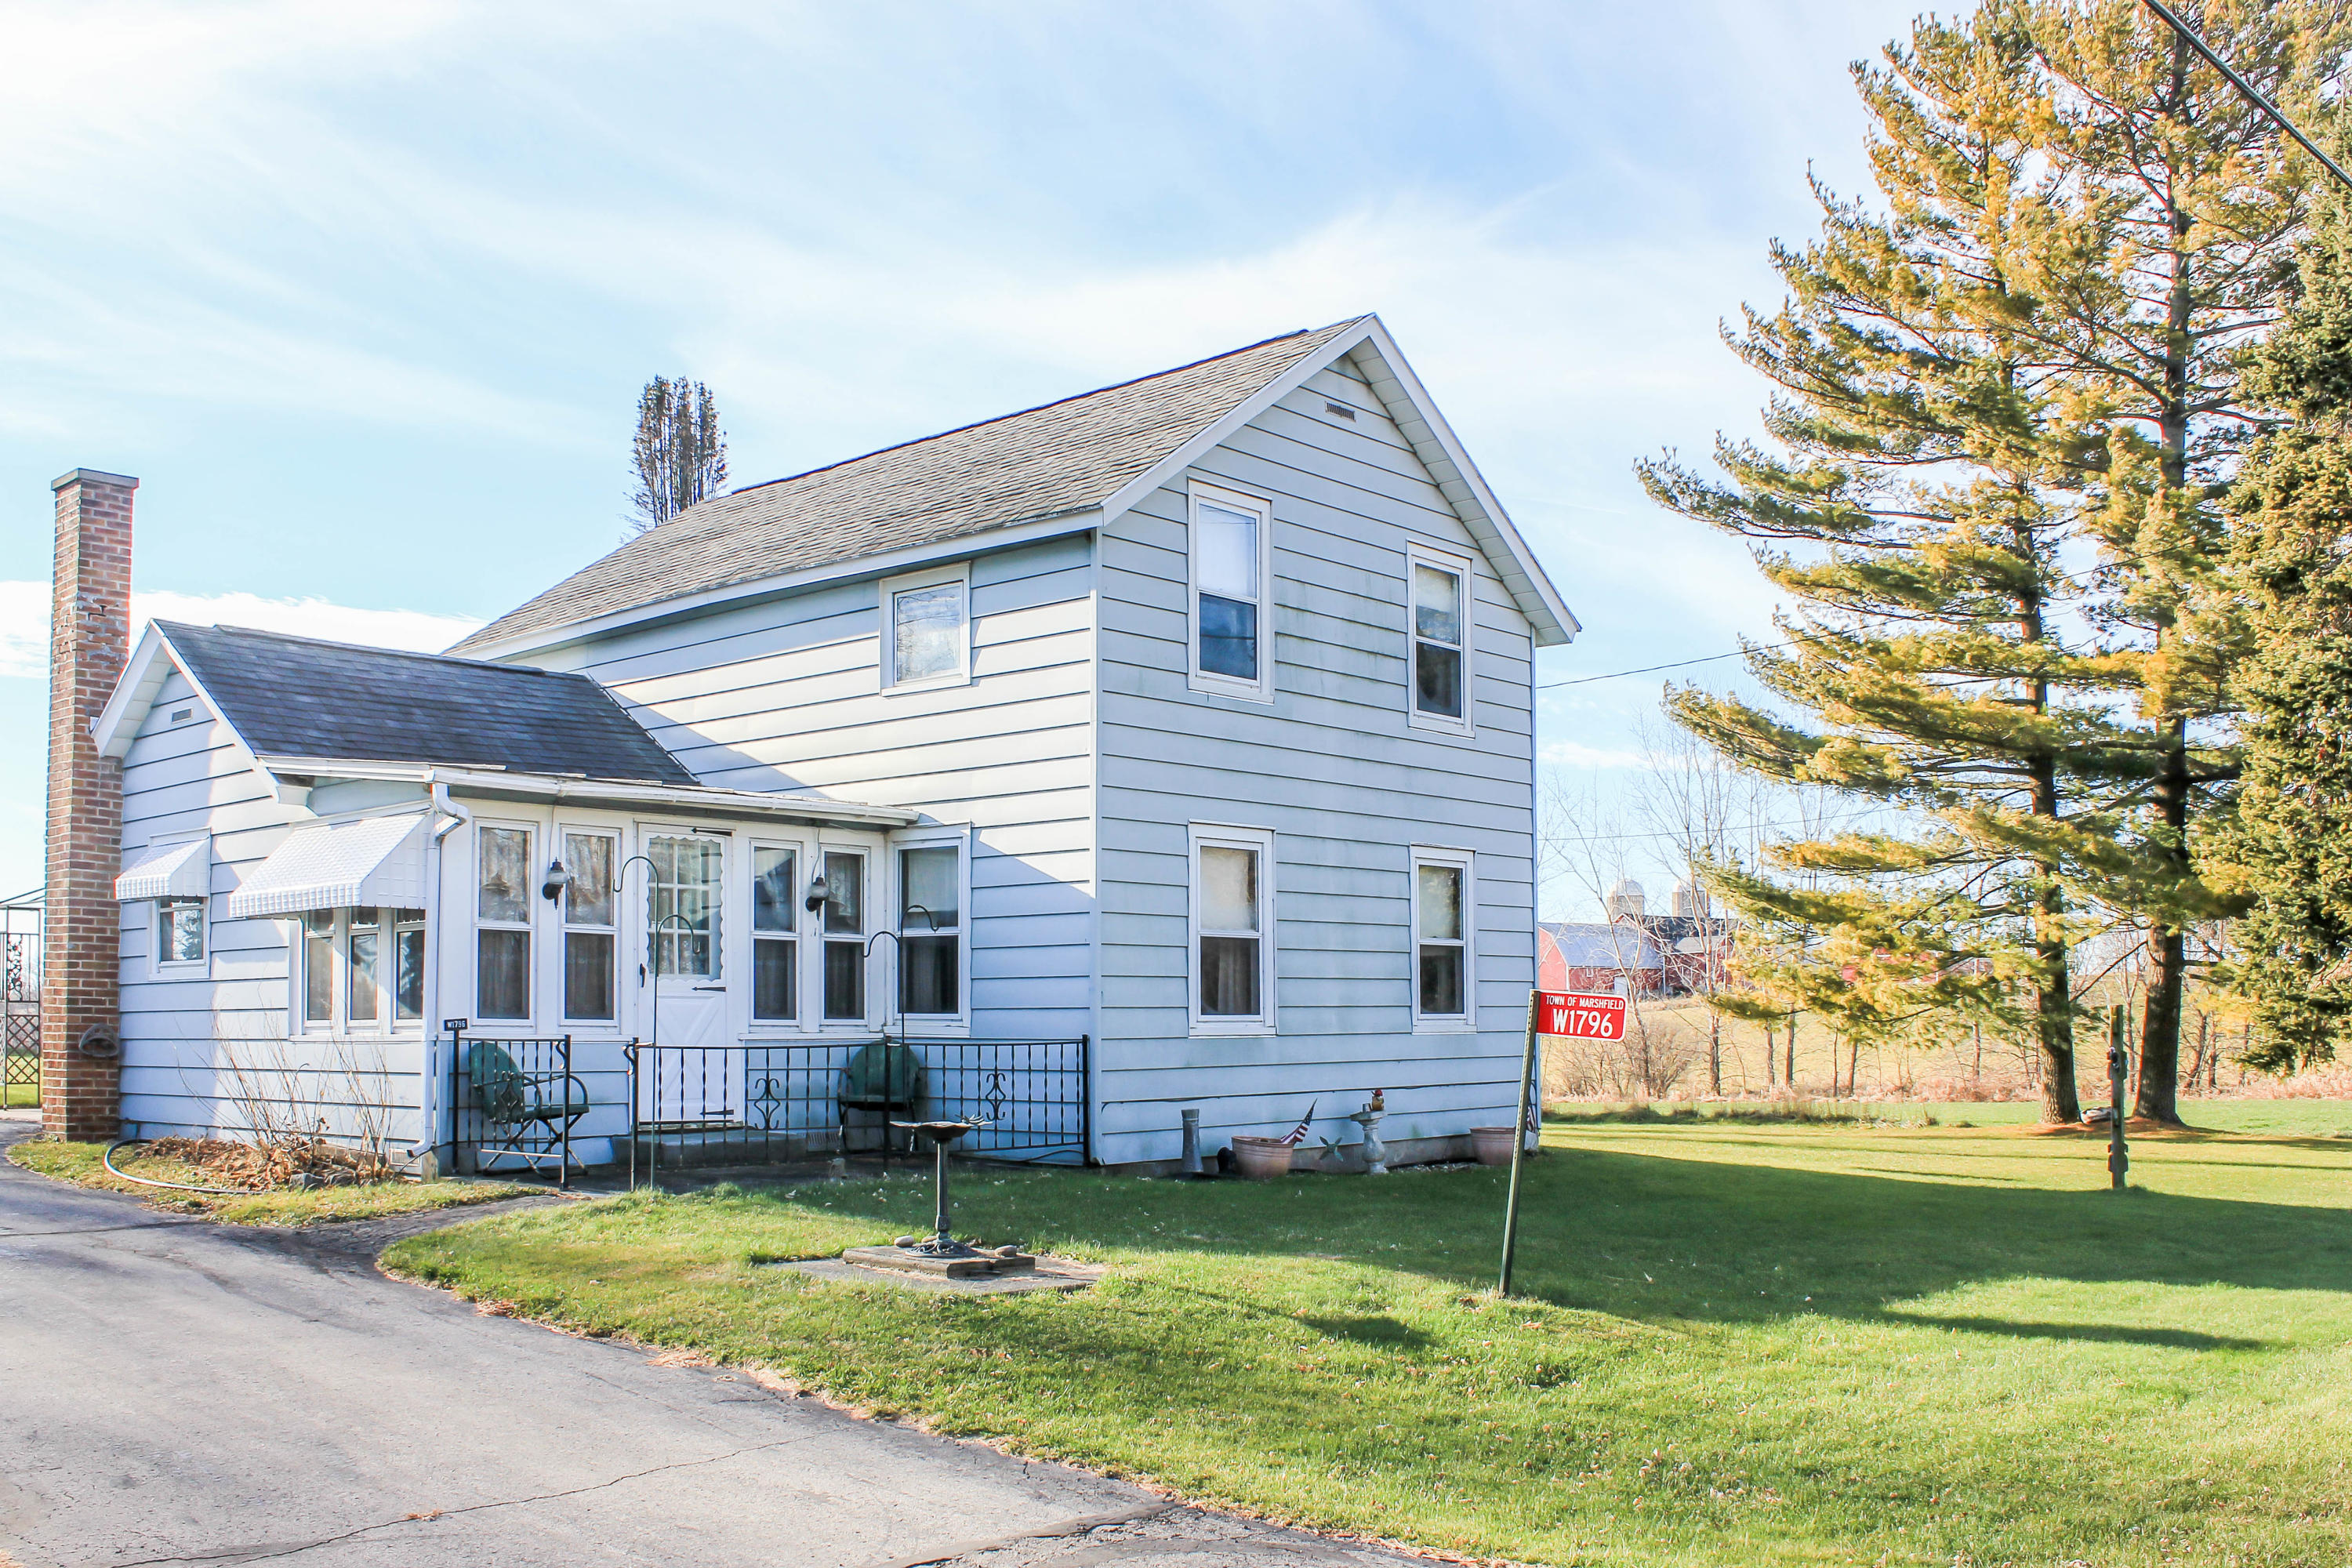 W1796 Puddlefort St, Marshfield, Wisconsin 53057, 4 Bedrooms Bedrooms, ,1 BathroomBathrooms,Single-family,For Sale,Puddlefort St,1720500